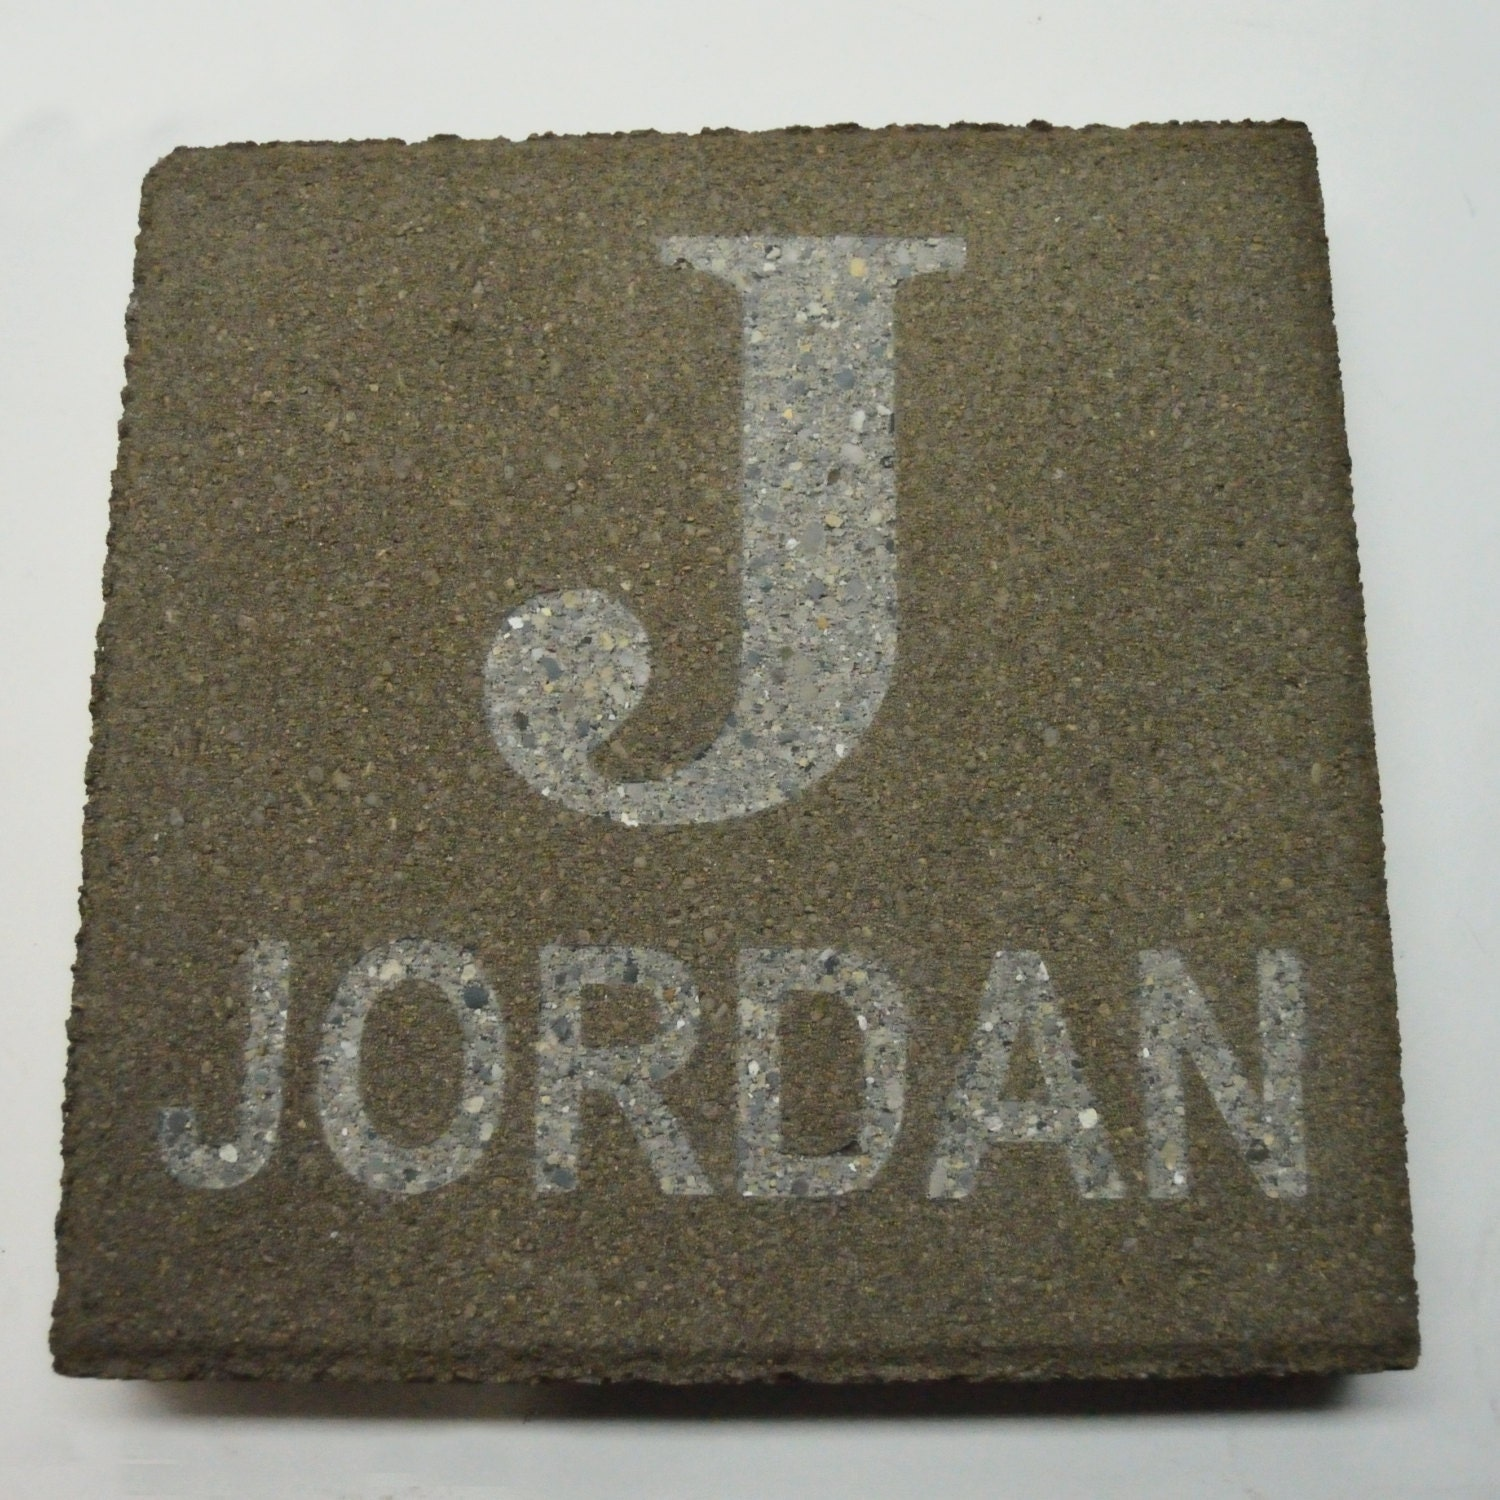 Initial Personalized Engraved Stepping Stone